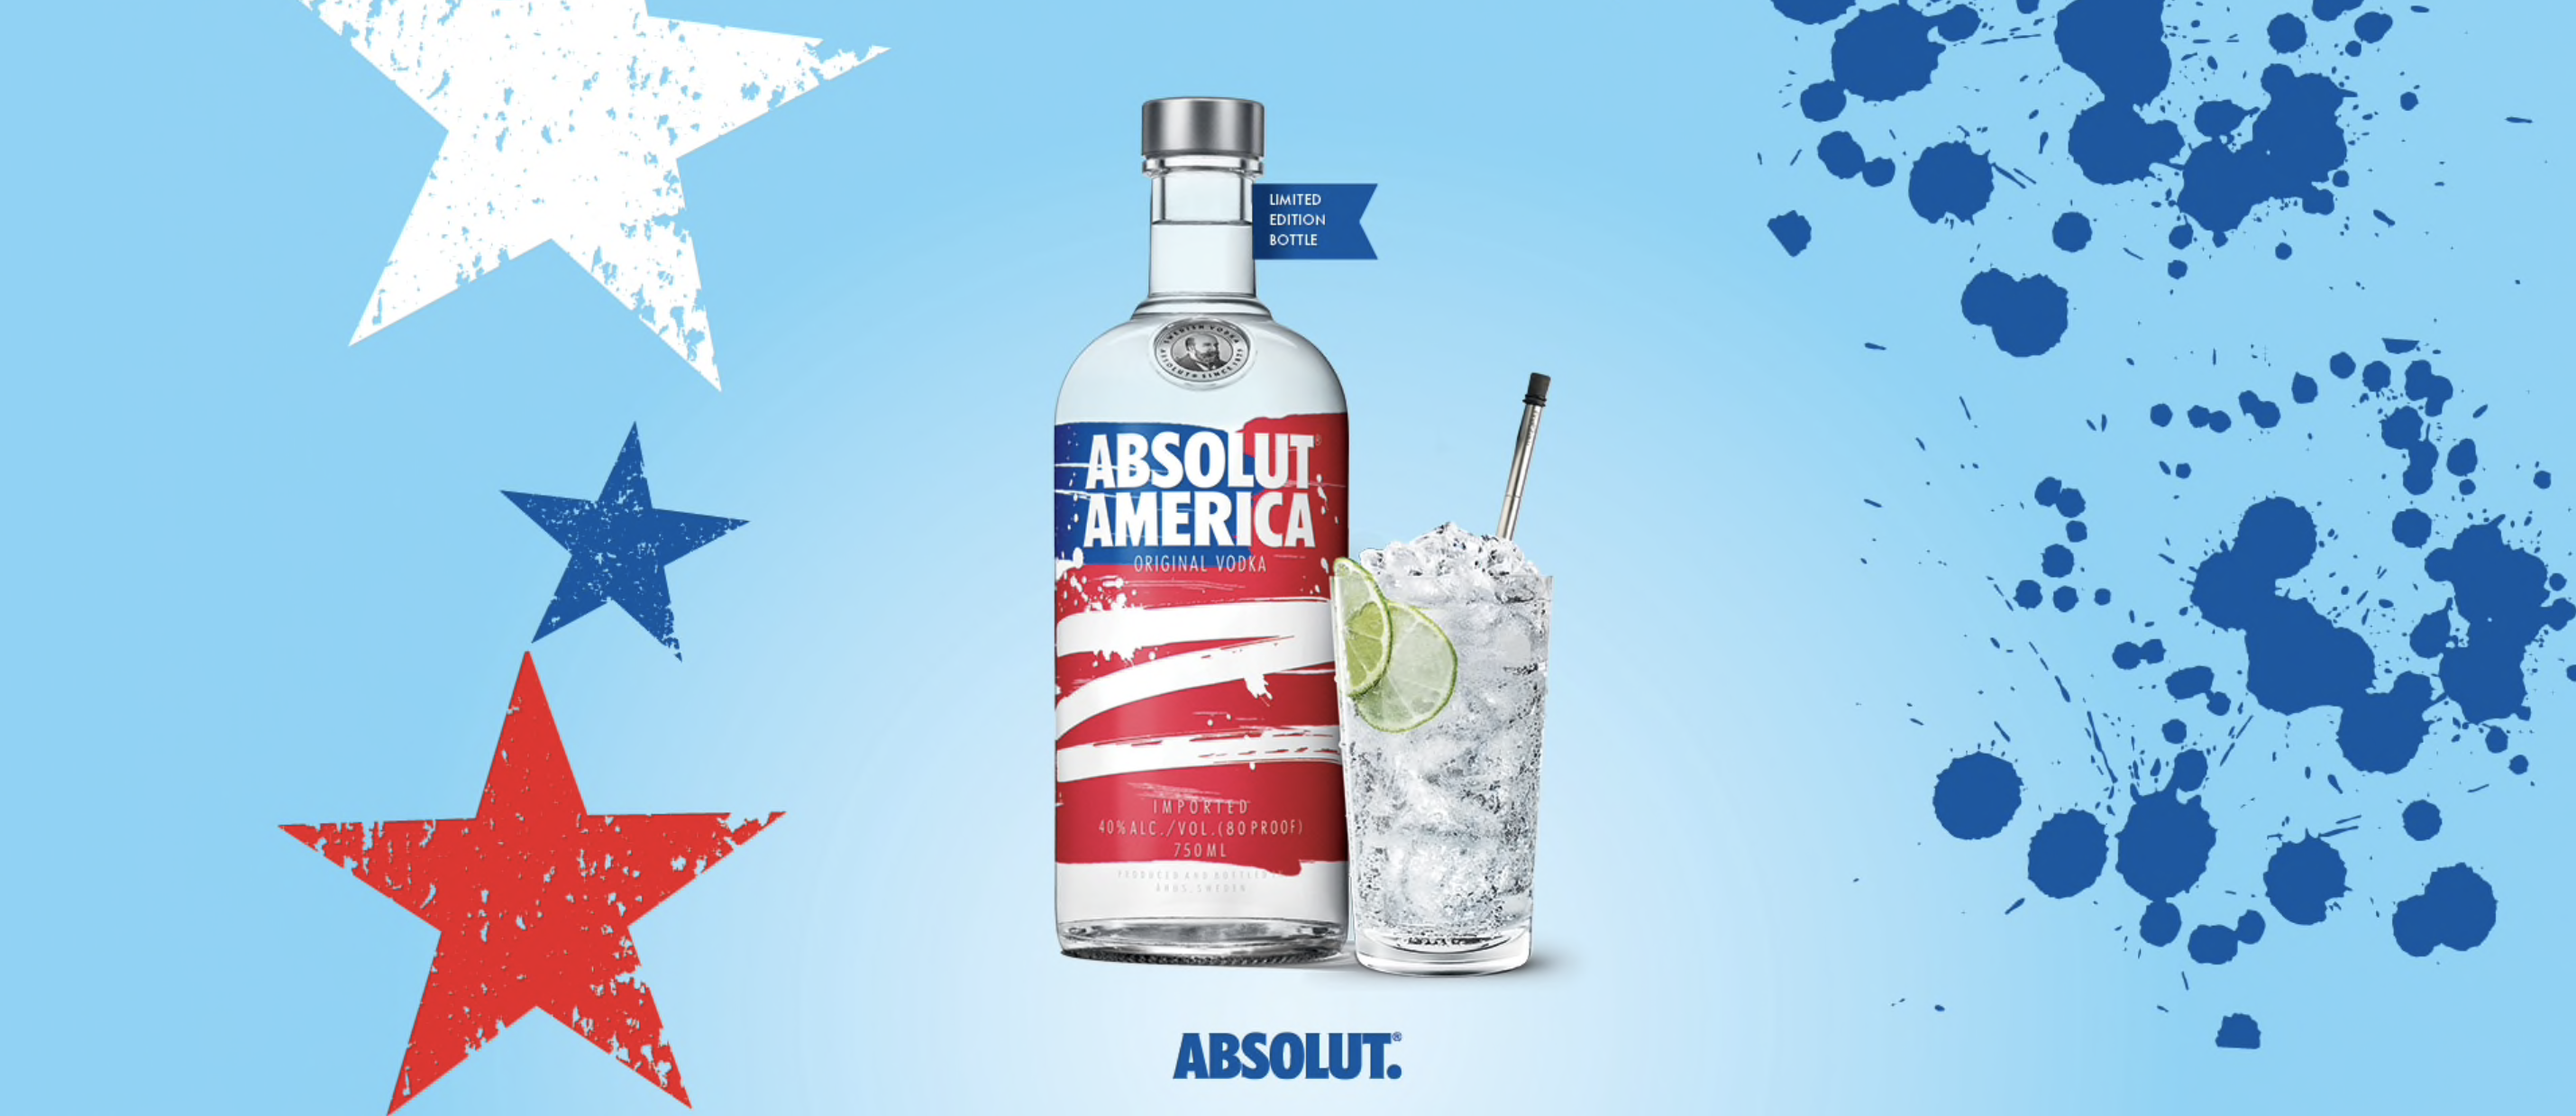 absolut_america.png